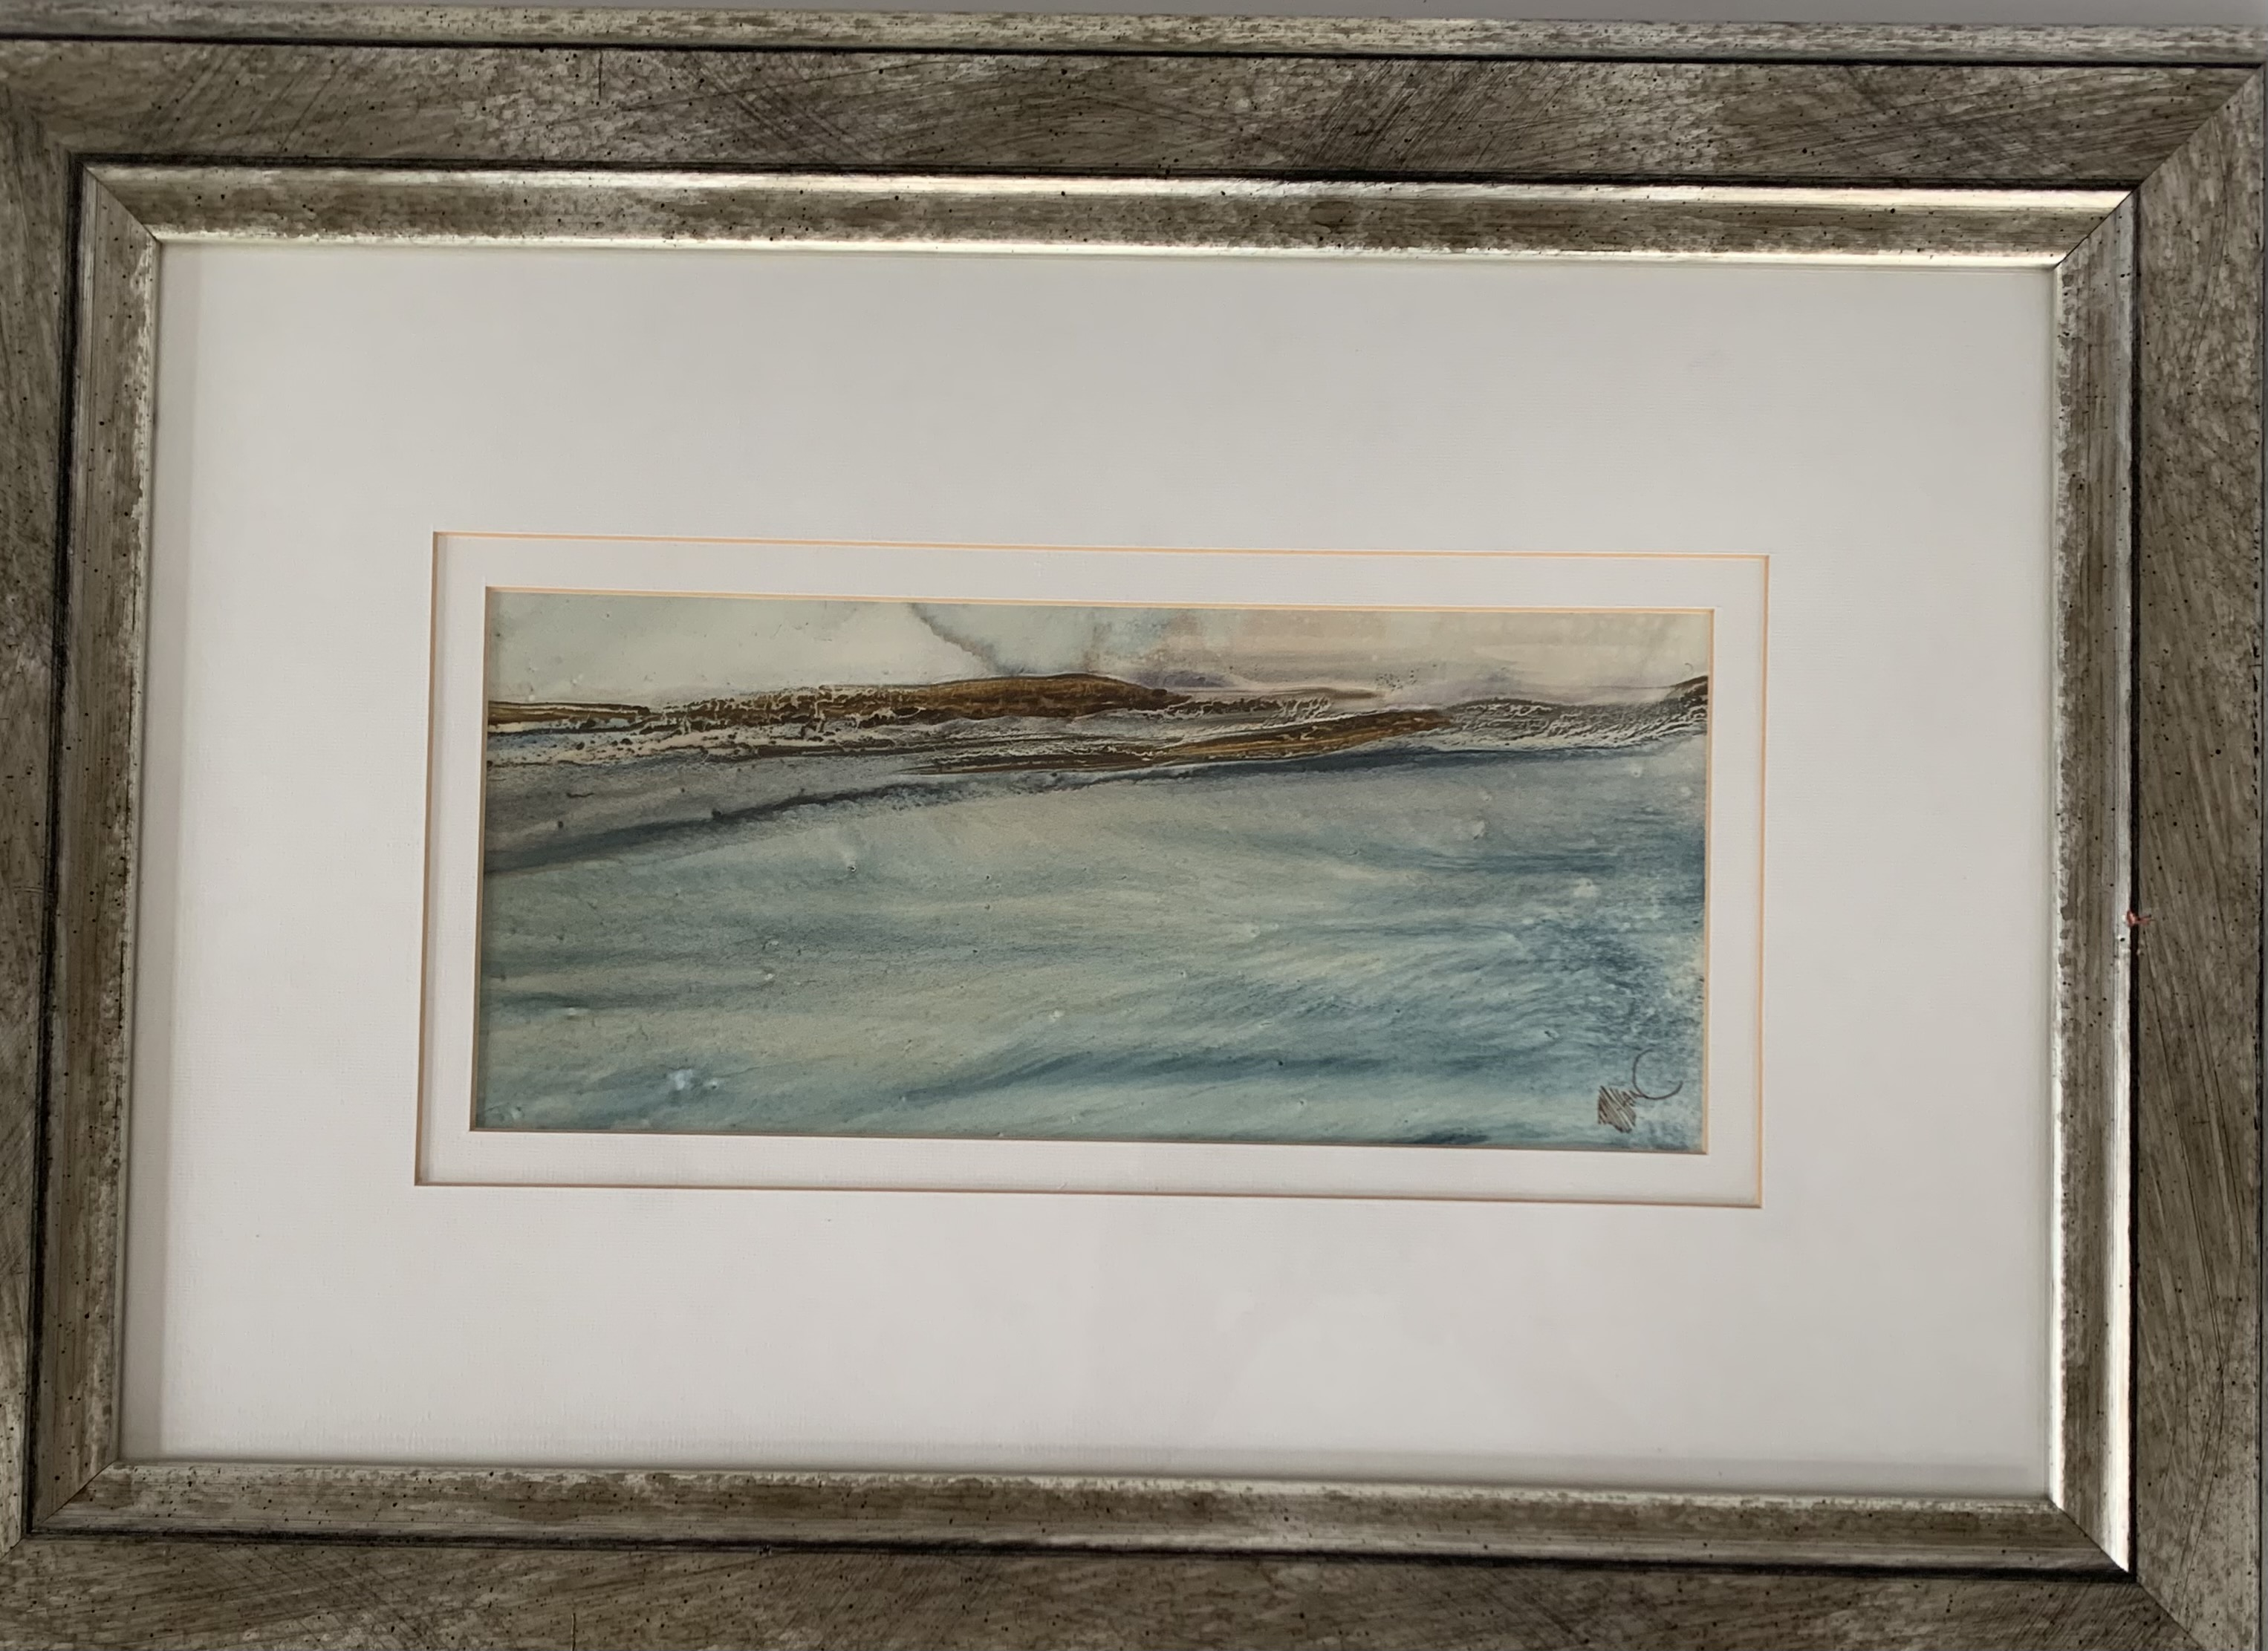 """Pair of watercolours """"Donegal Coast II"""" and """"Donegal Coast III"""" by Tony Holahan. Images 12"""" x 5. - Image 3 of 6"""